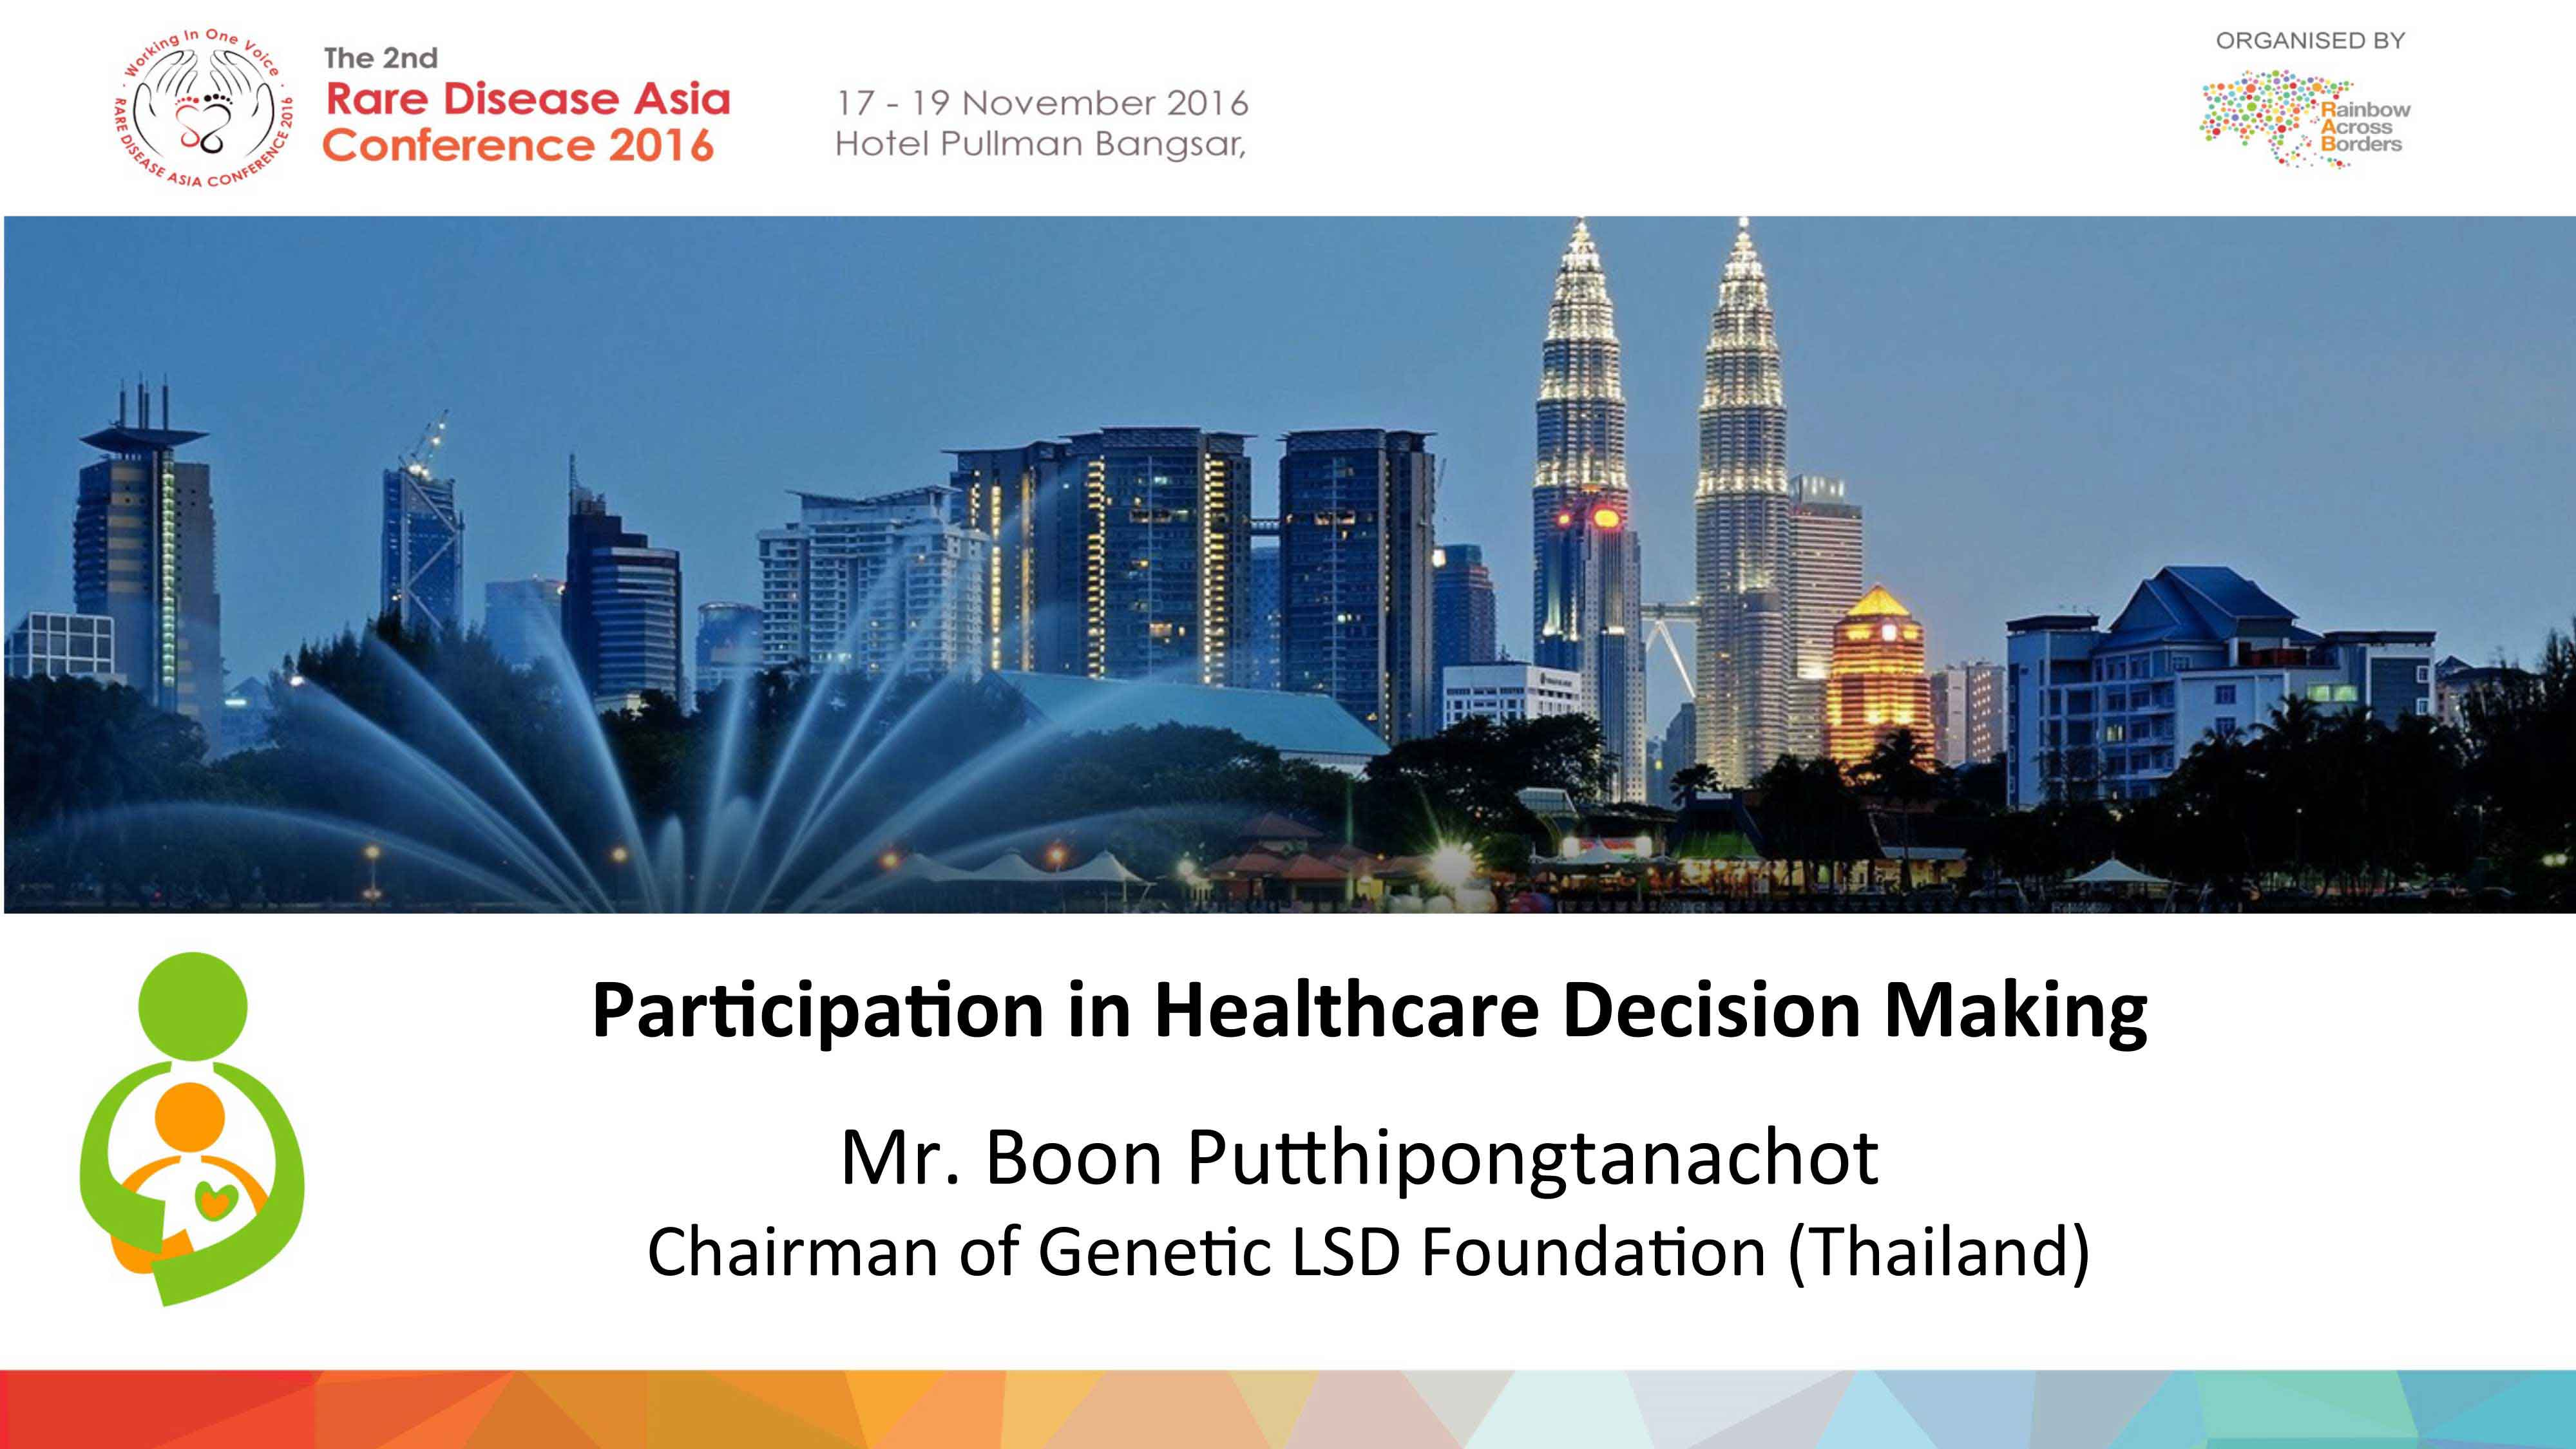 Mr Boon Putthipongtanachot (Chairman, Genetic LSD Foundation Thailand) - Participation in Healthcare Decision Making